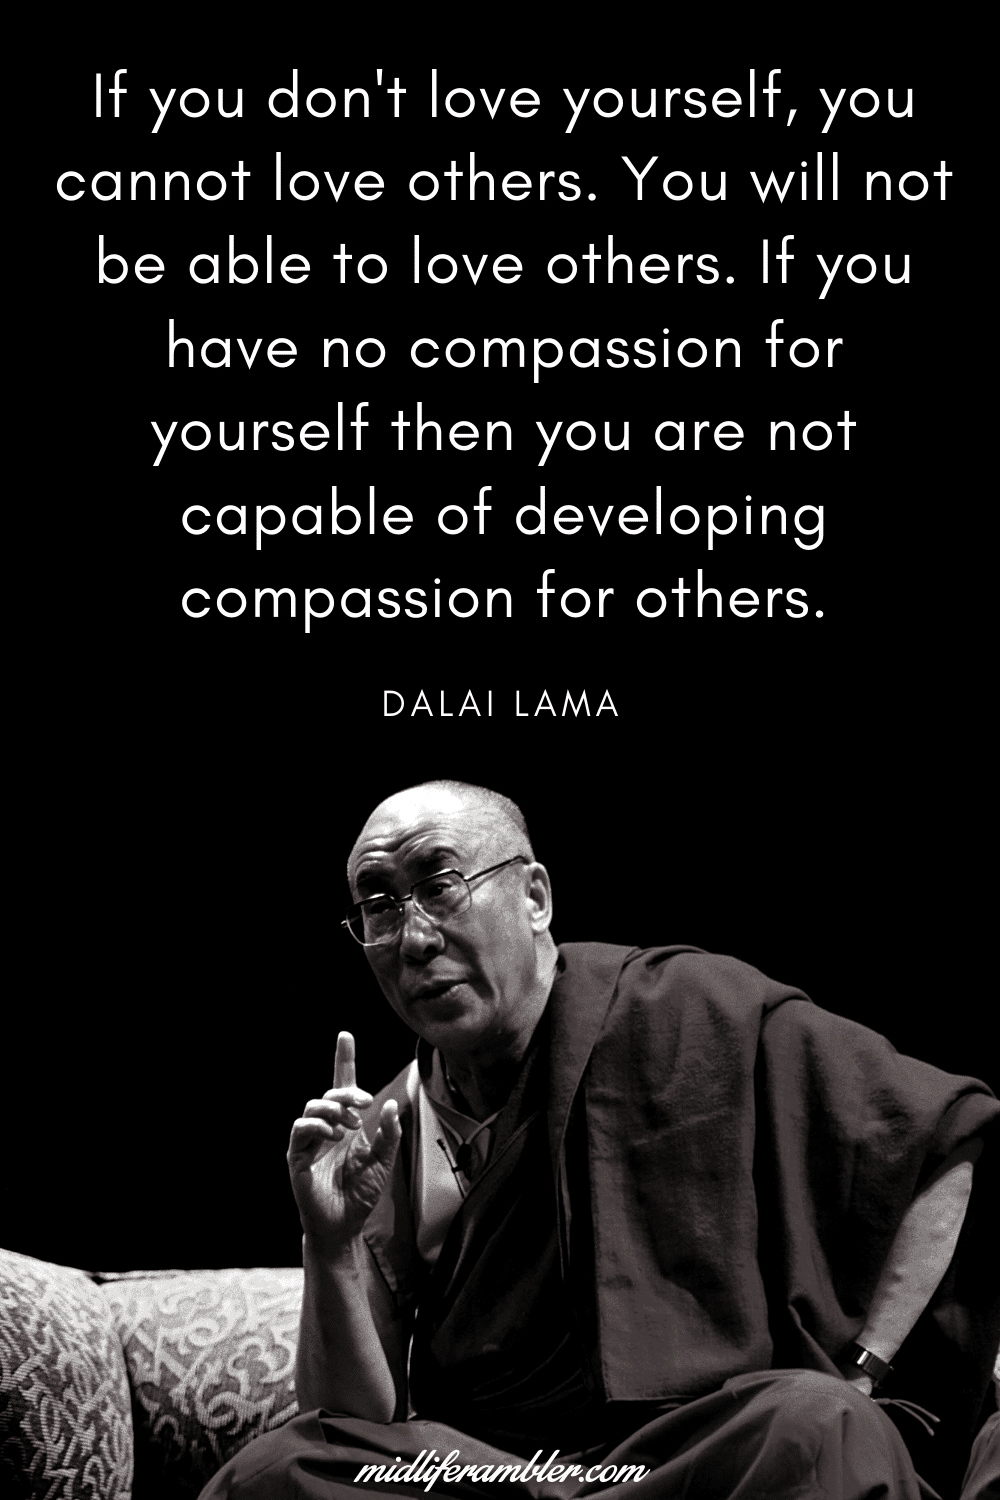 50 Self-Compassion Quotes and Affirmations to Help You Learn to Love and Accept Yourself - If you don't love yourself, you cannot love others. You will not be able to love others. If you have no compassion for yourself then you are not capable of developing compassion for others.  - Dalai Lama